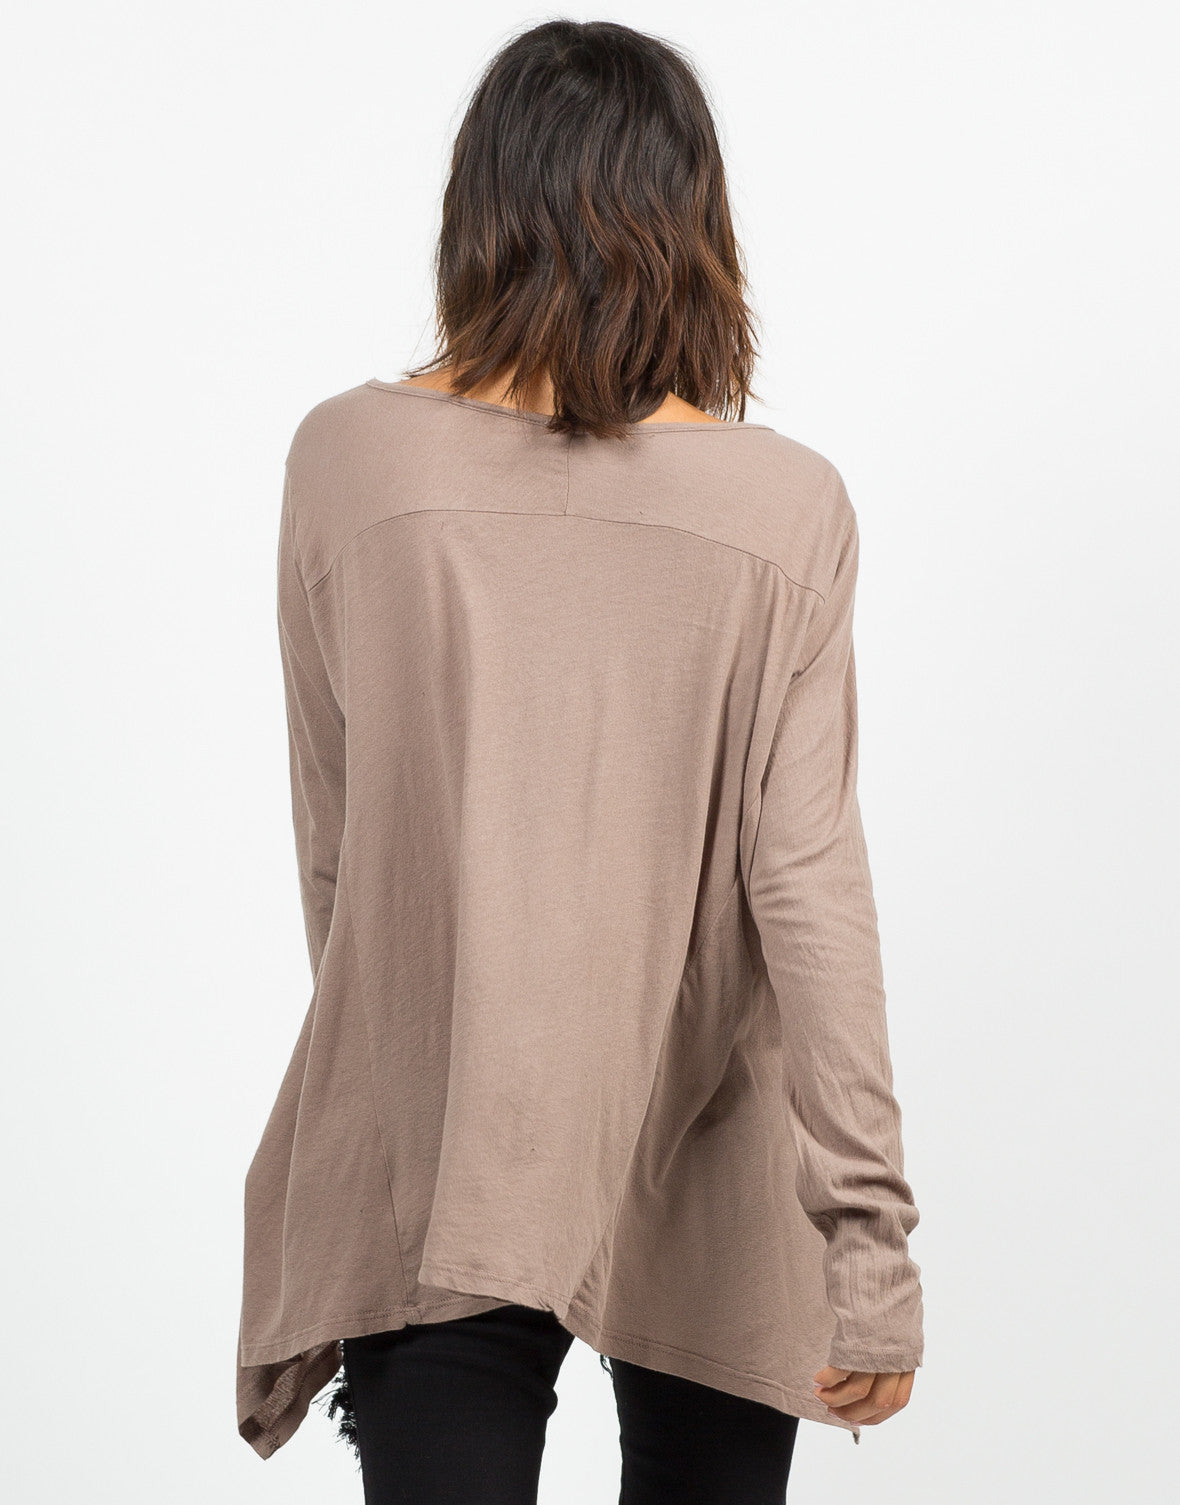 Back View of Basic Long Sleeve Tee